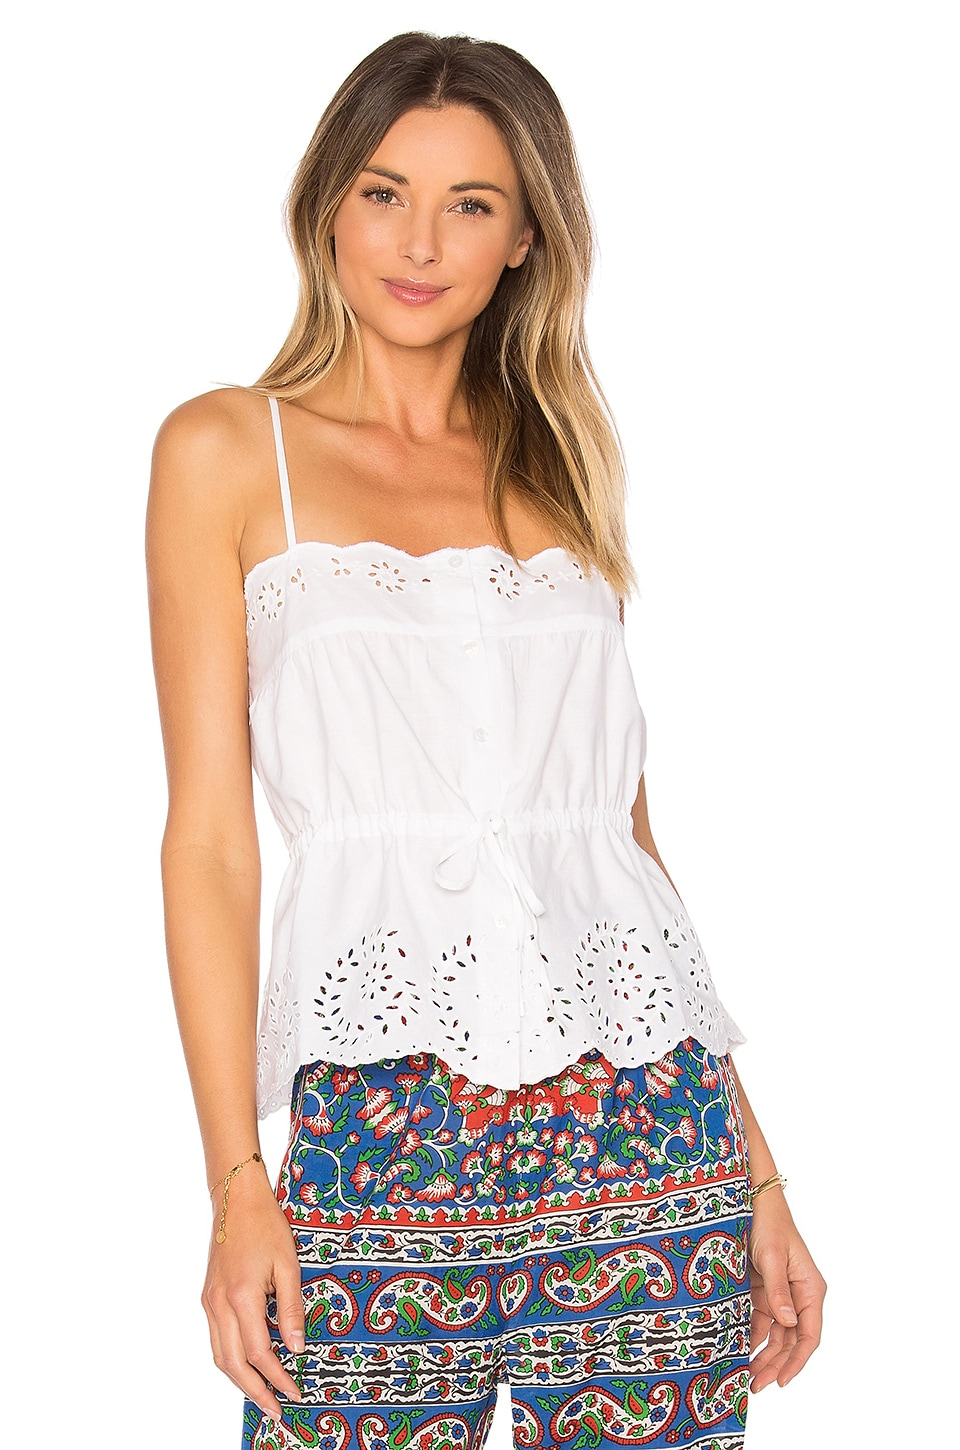 Cute Top by Mes Demoiselles